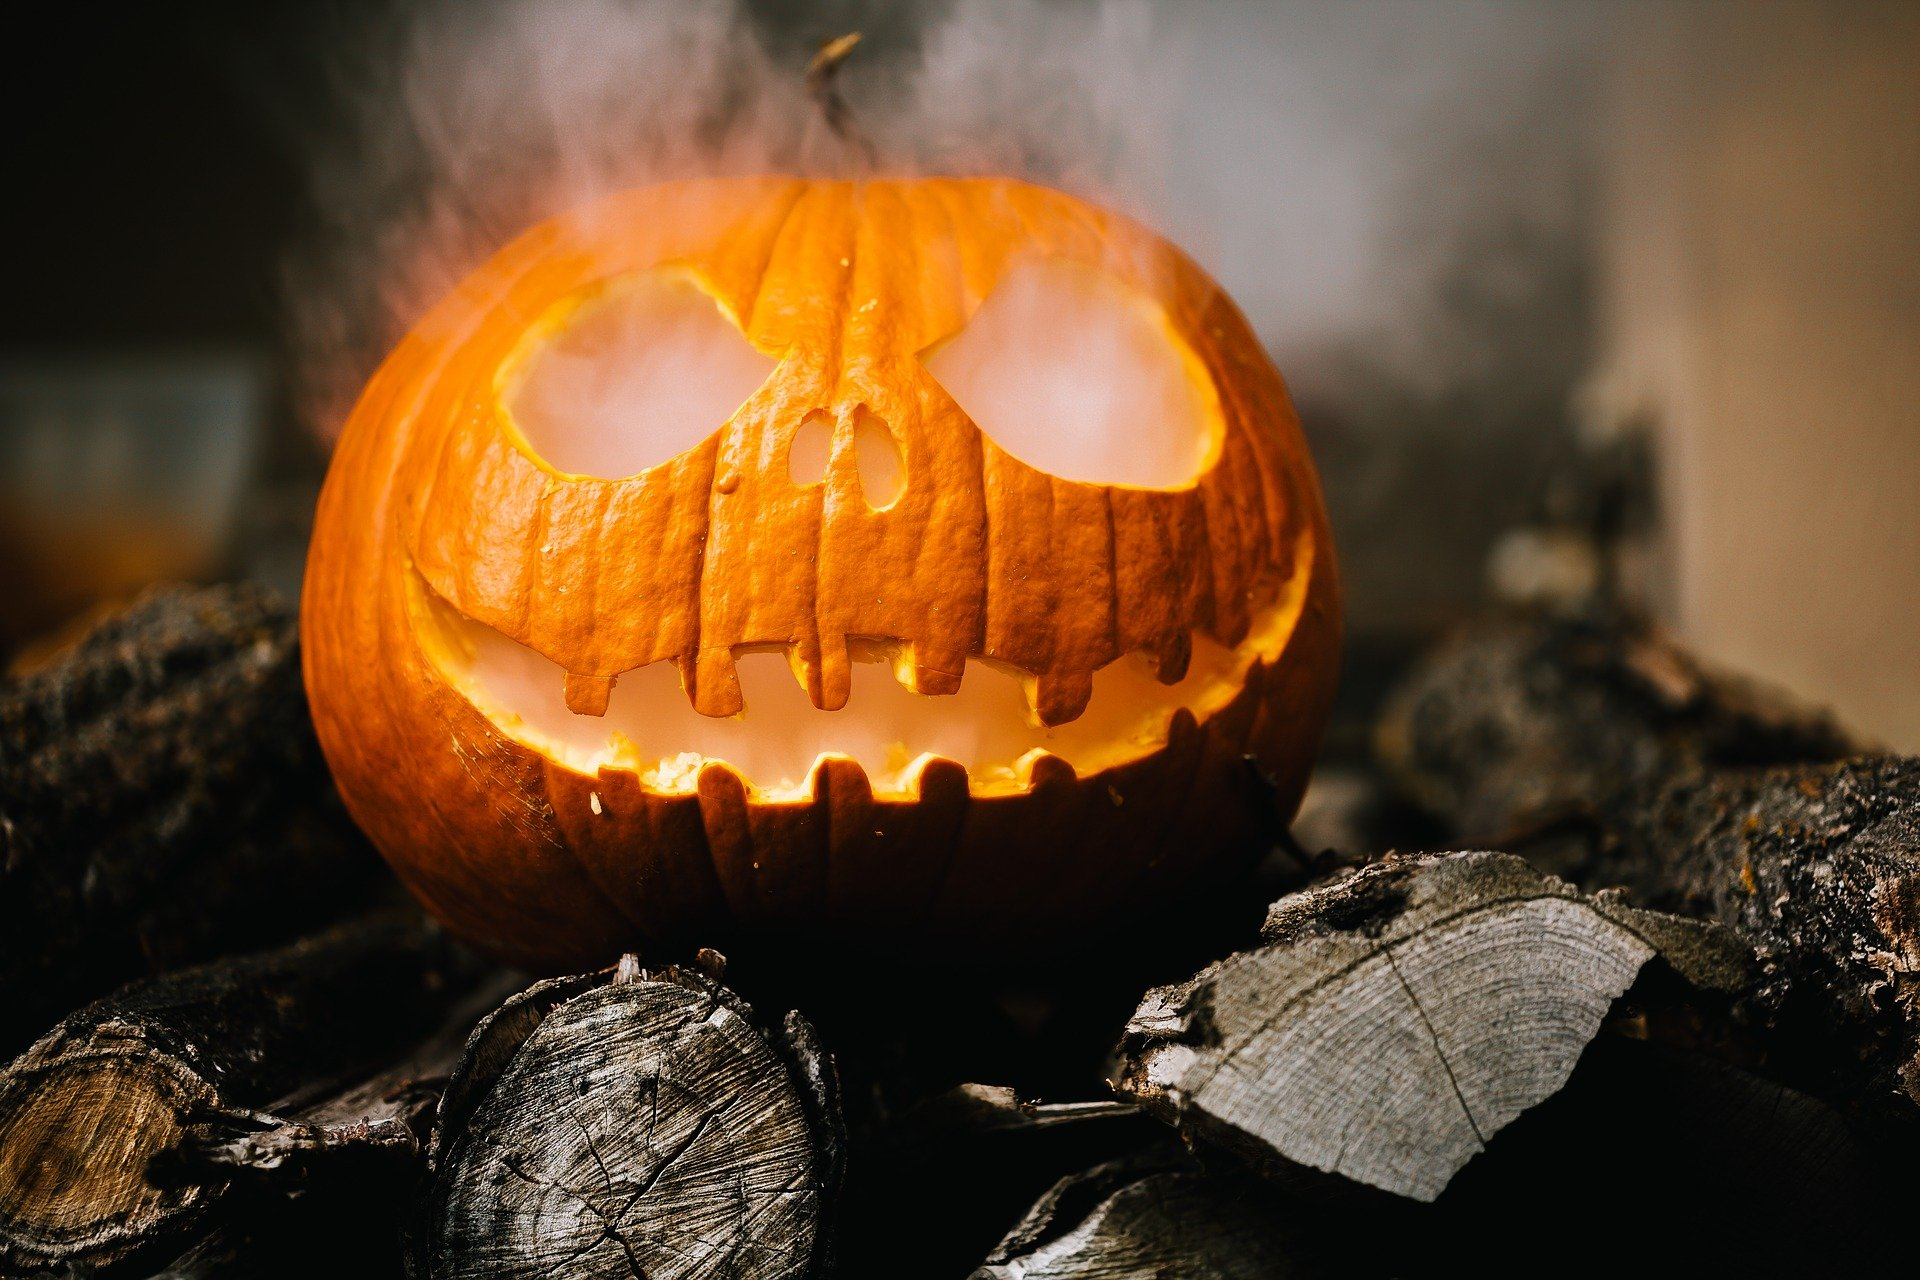 7 ways to have fun celebrating Halloween in a pandemic